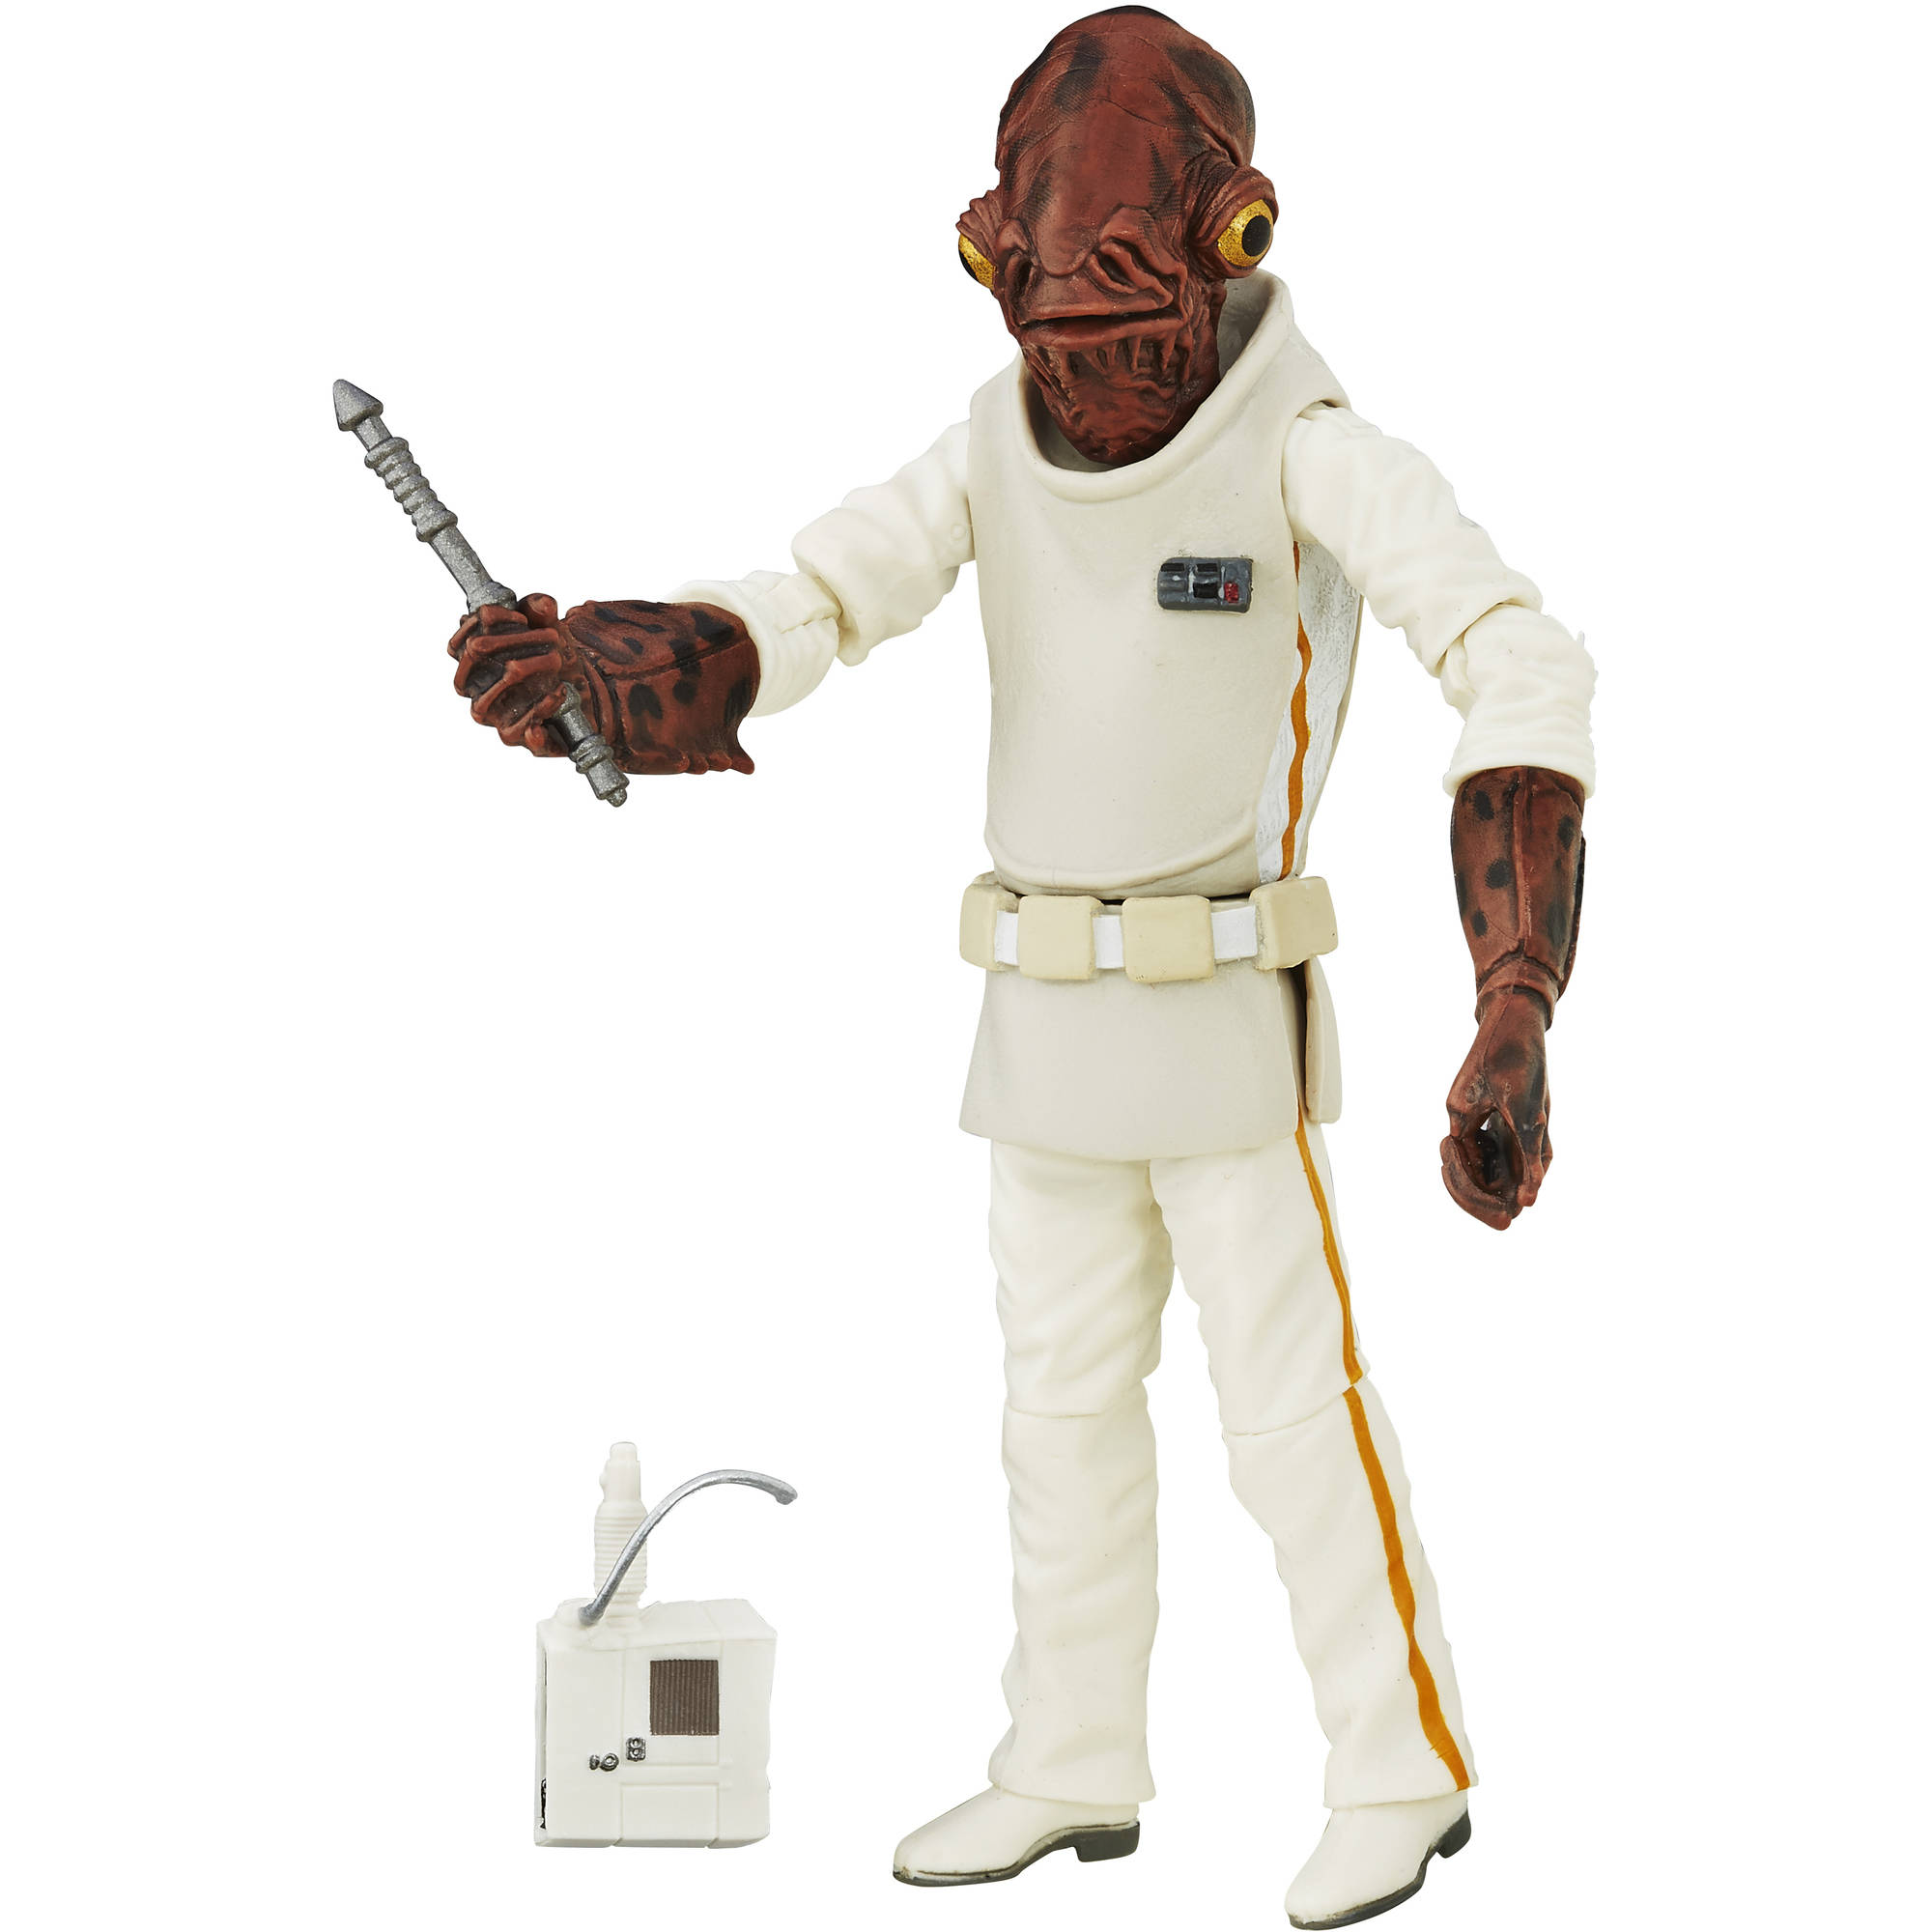 Star Wars Black Series Return of the Jedi Admiral Ackbar